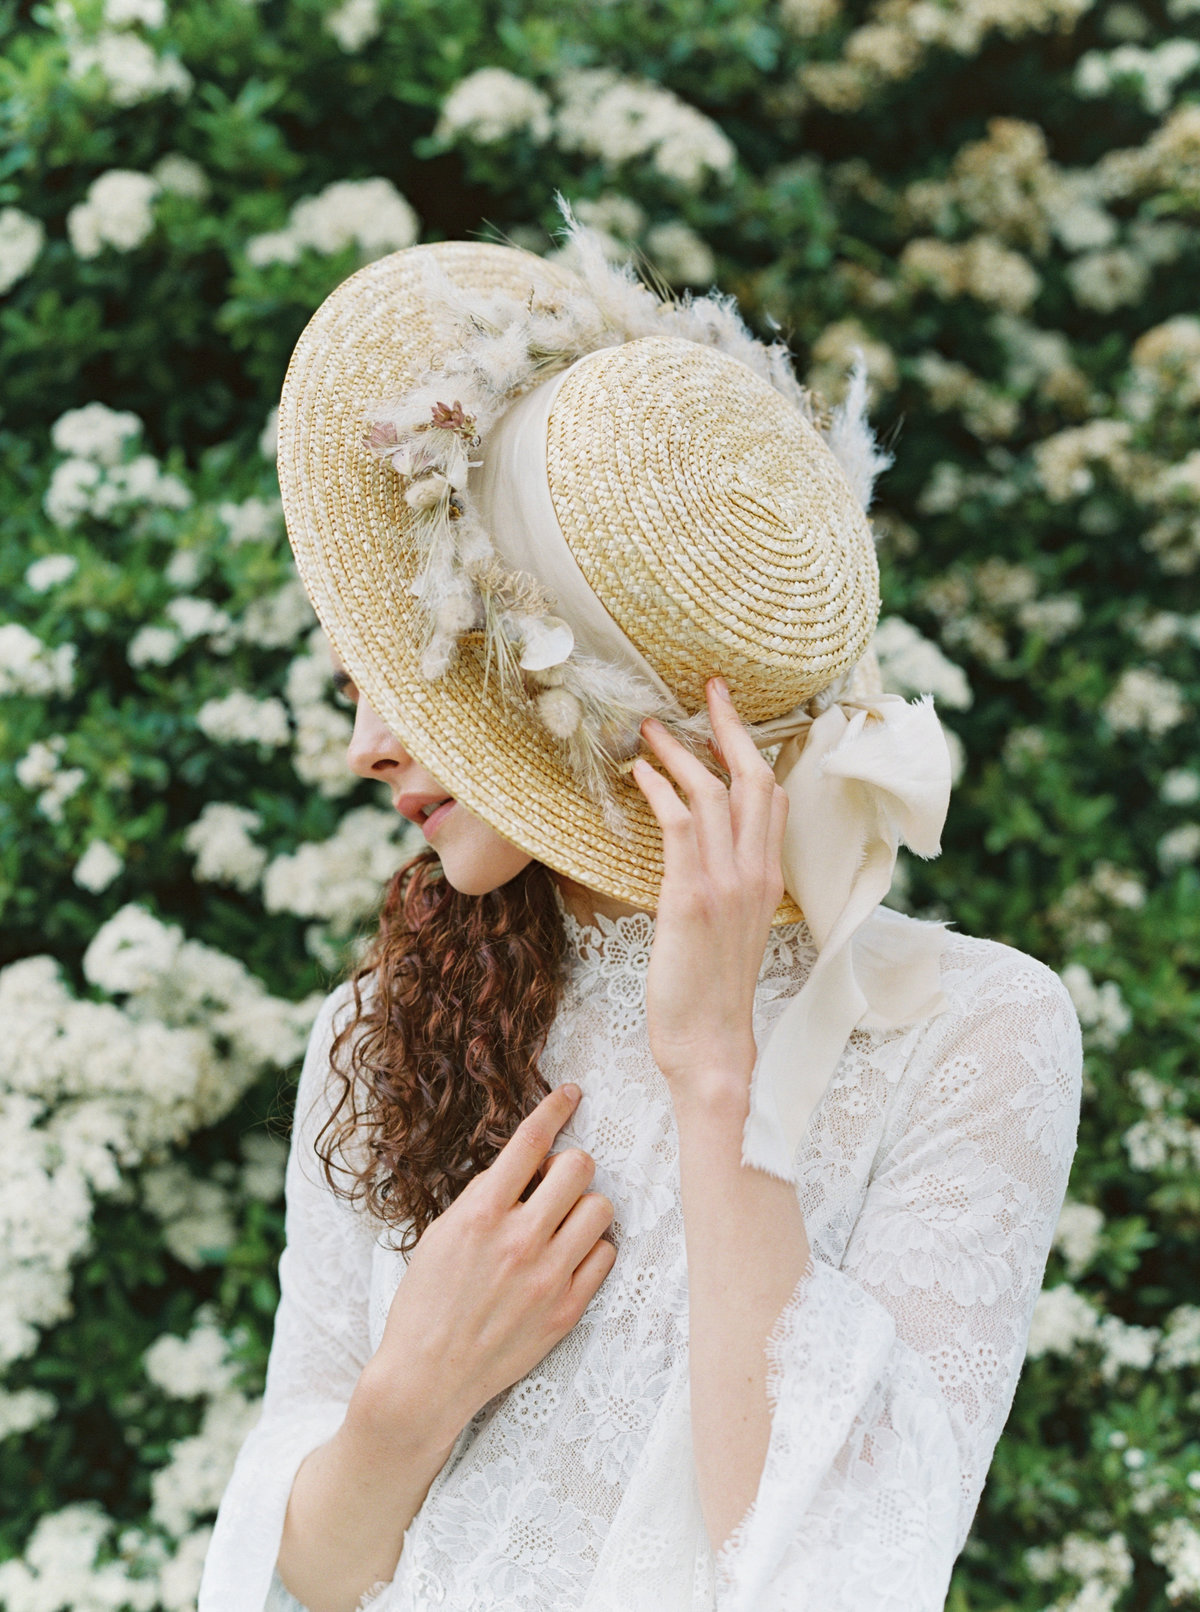 Fulham Palace Bridal Editorial Session - Cassie Valente Photography 0031